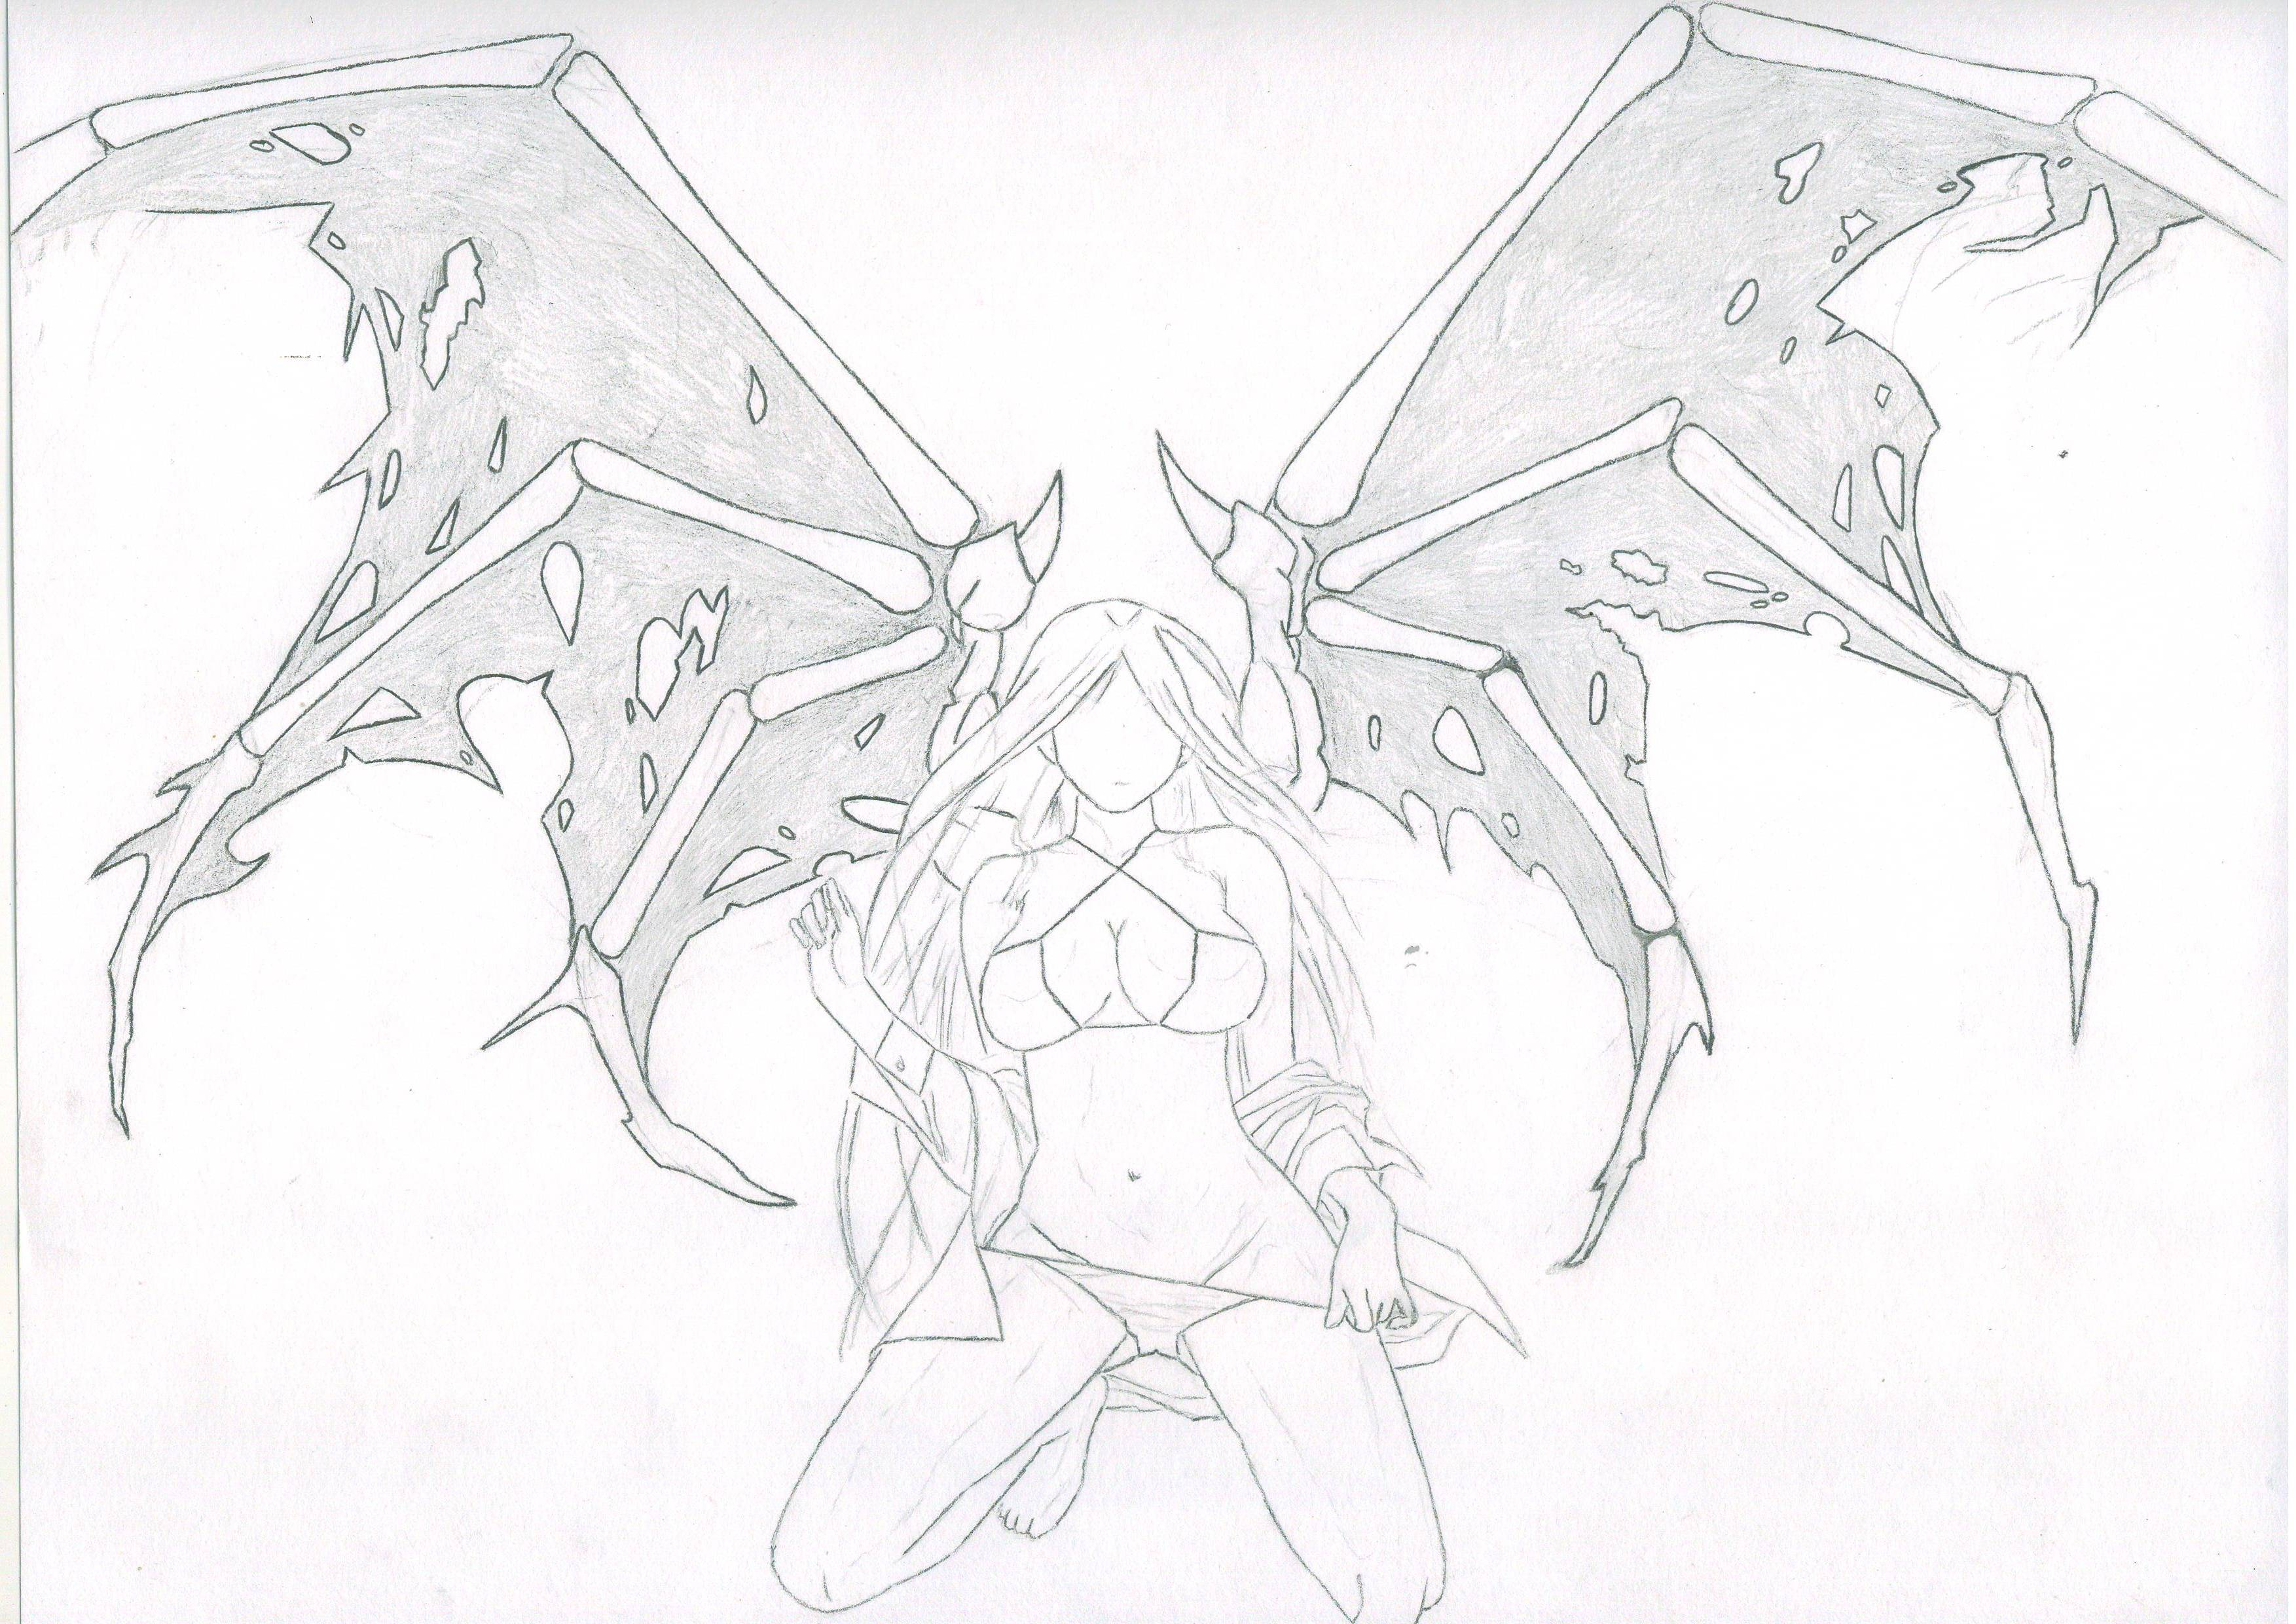 fallen angel coloring pages - fallen angel outline by onecondition on deviantart